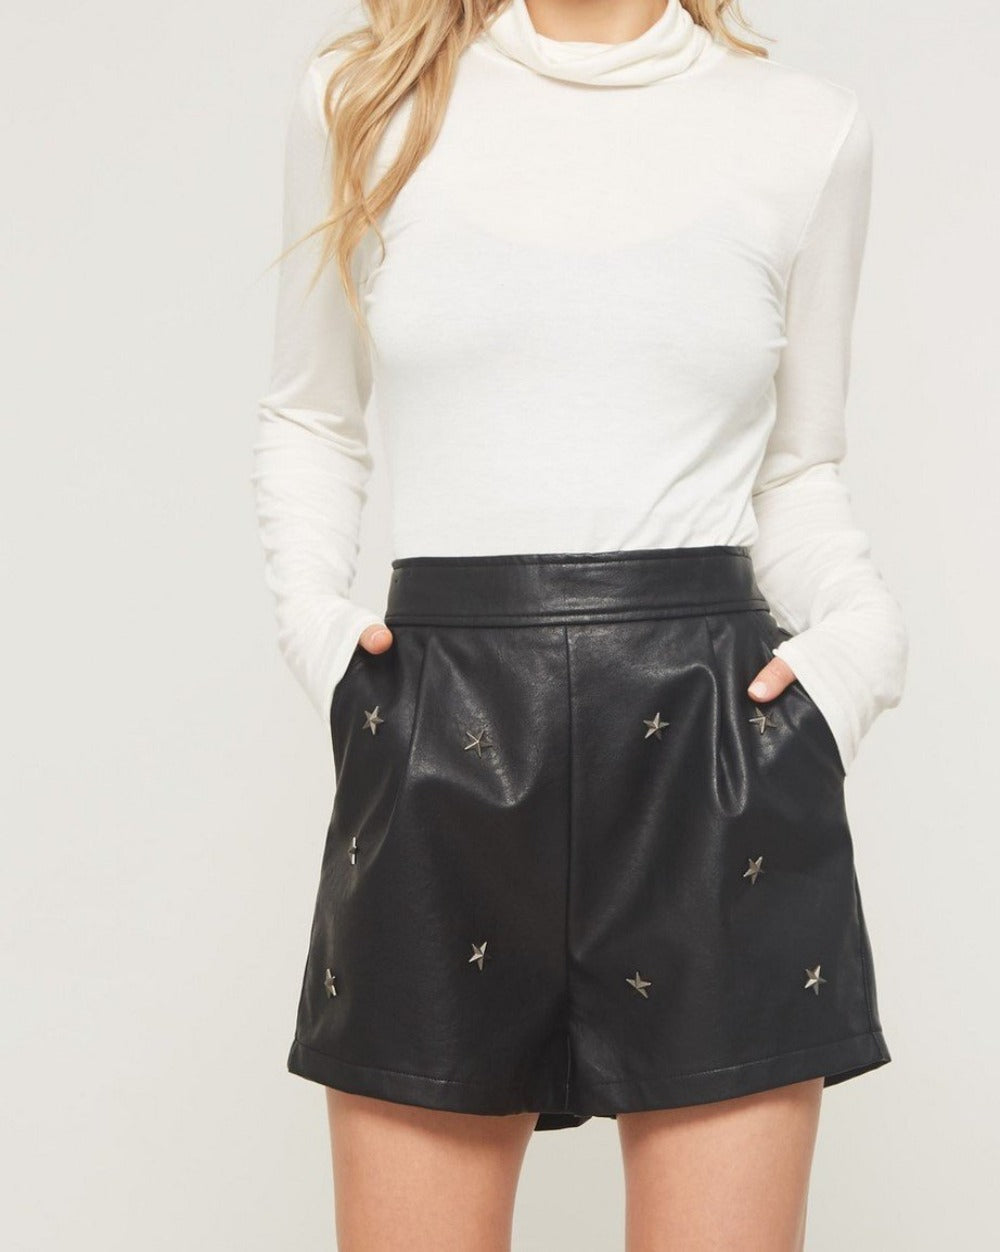 Starstruck black faux leather shorts with star detailing - Sahvant